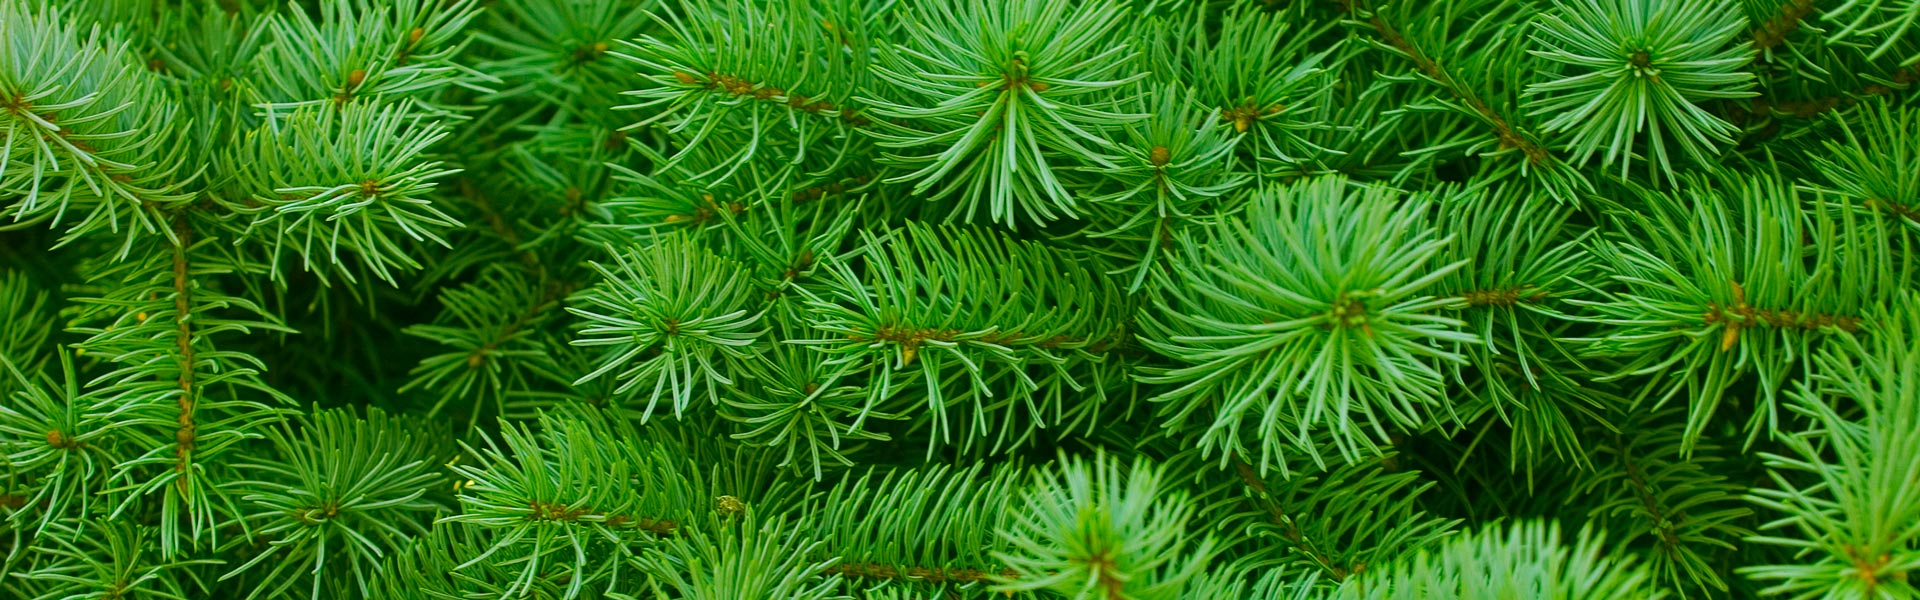 Green pine sprouts growing in Lapland.